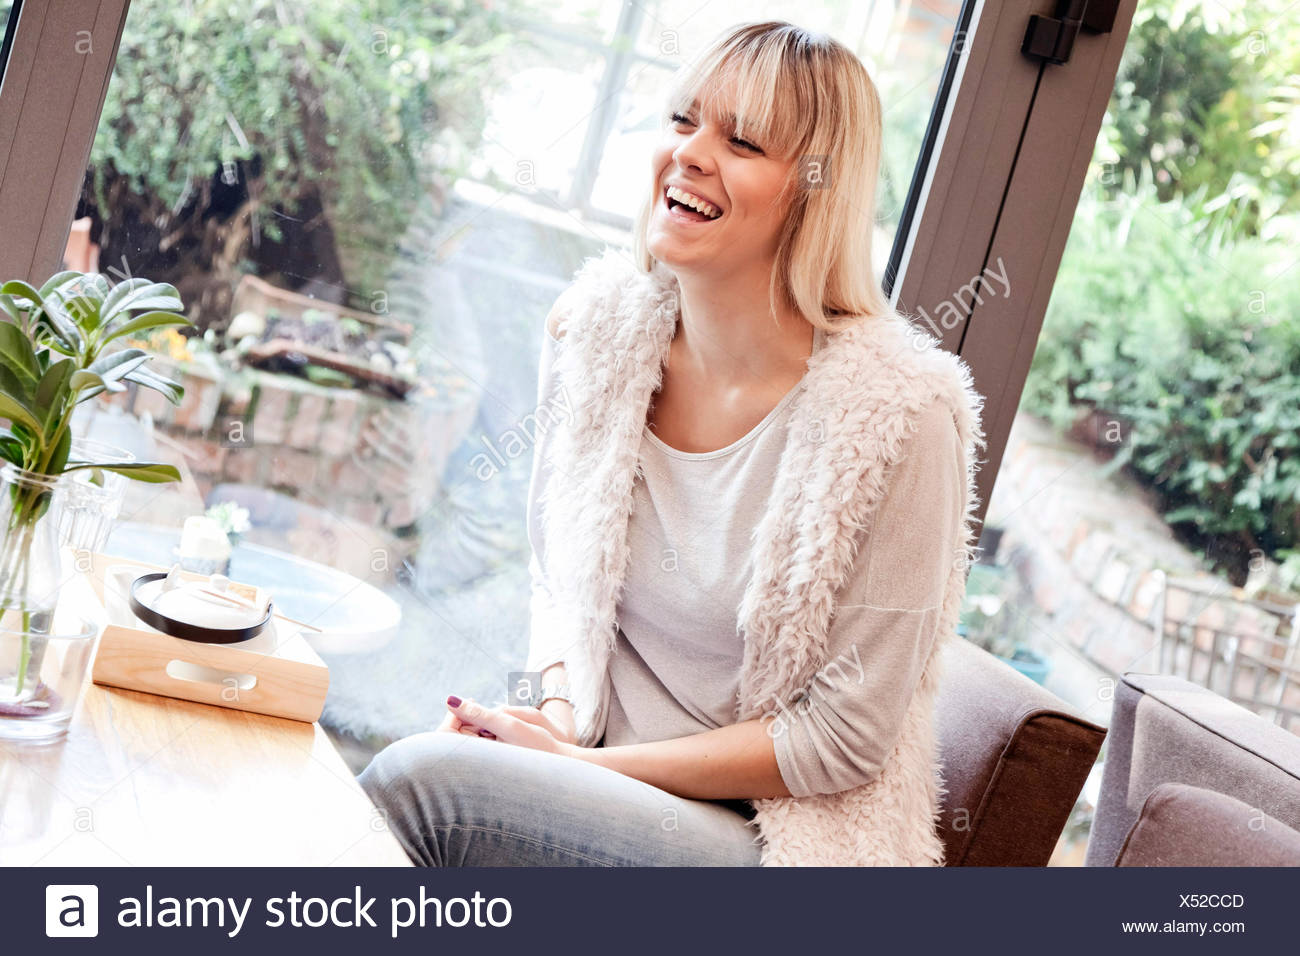 Portrait of young woman in domestic room - Stock Image